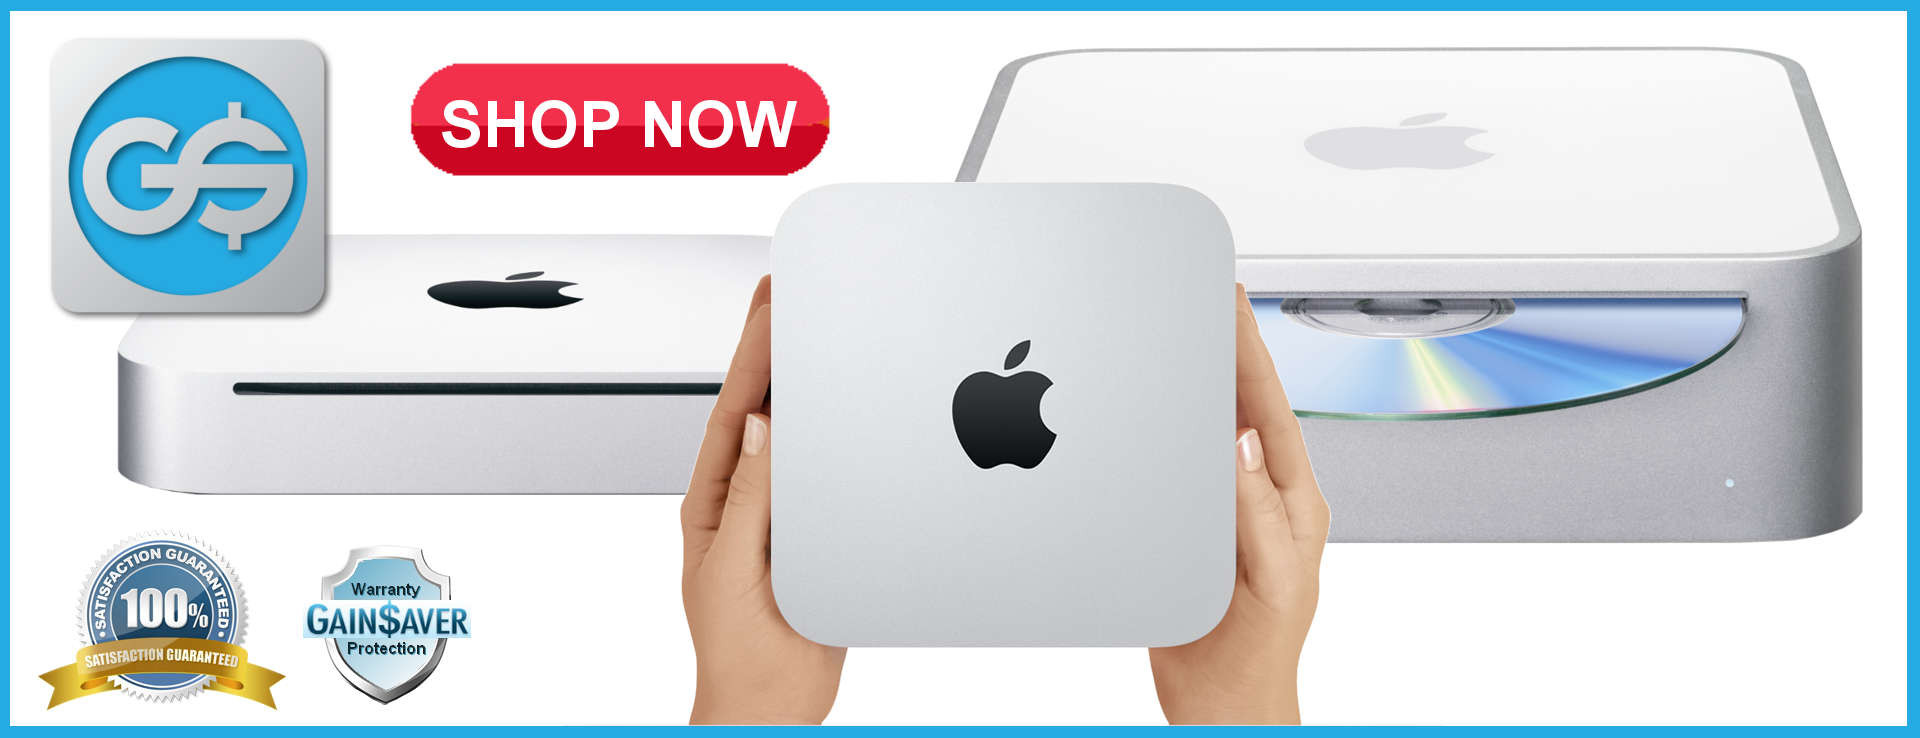 How to Find Great Bargains on Refurbished Mac minis